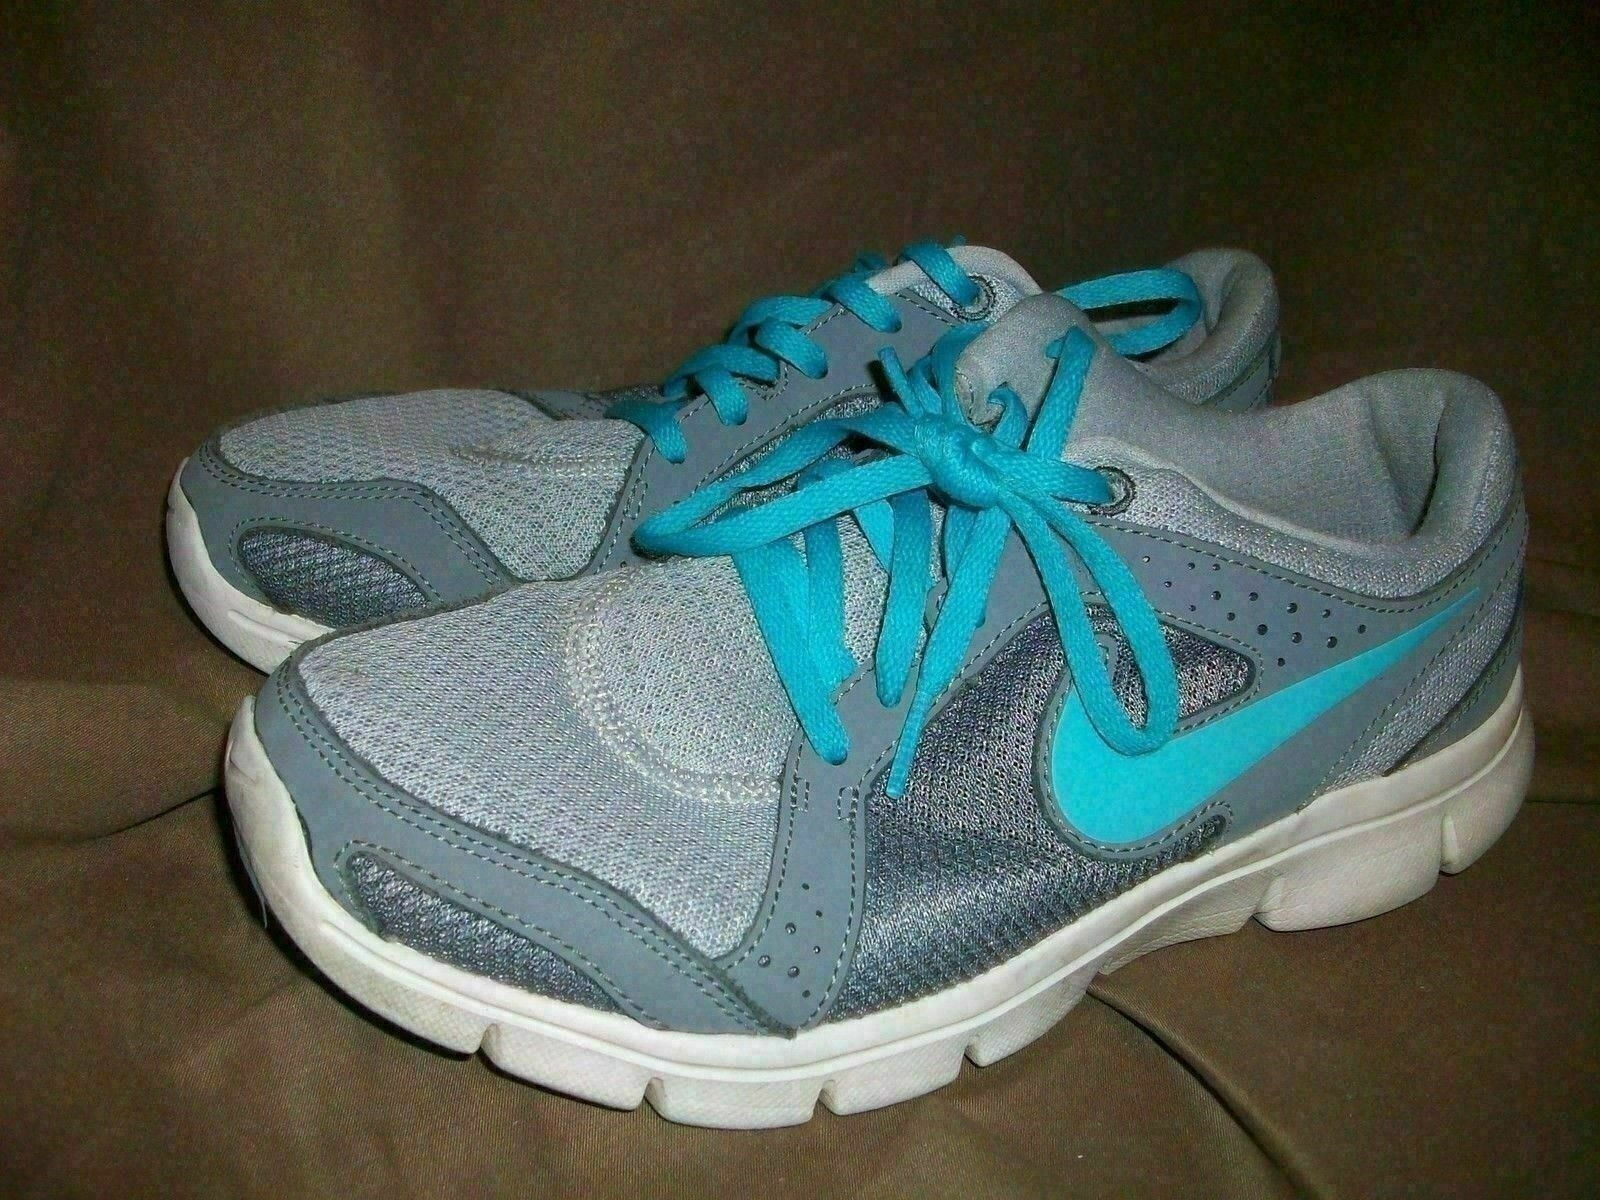 (USED WORN) NIKE FLEX EXPERIENCE RN 2 RUNNING SHOES GREY TURQUOISE WOMENS SZ 7.5